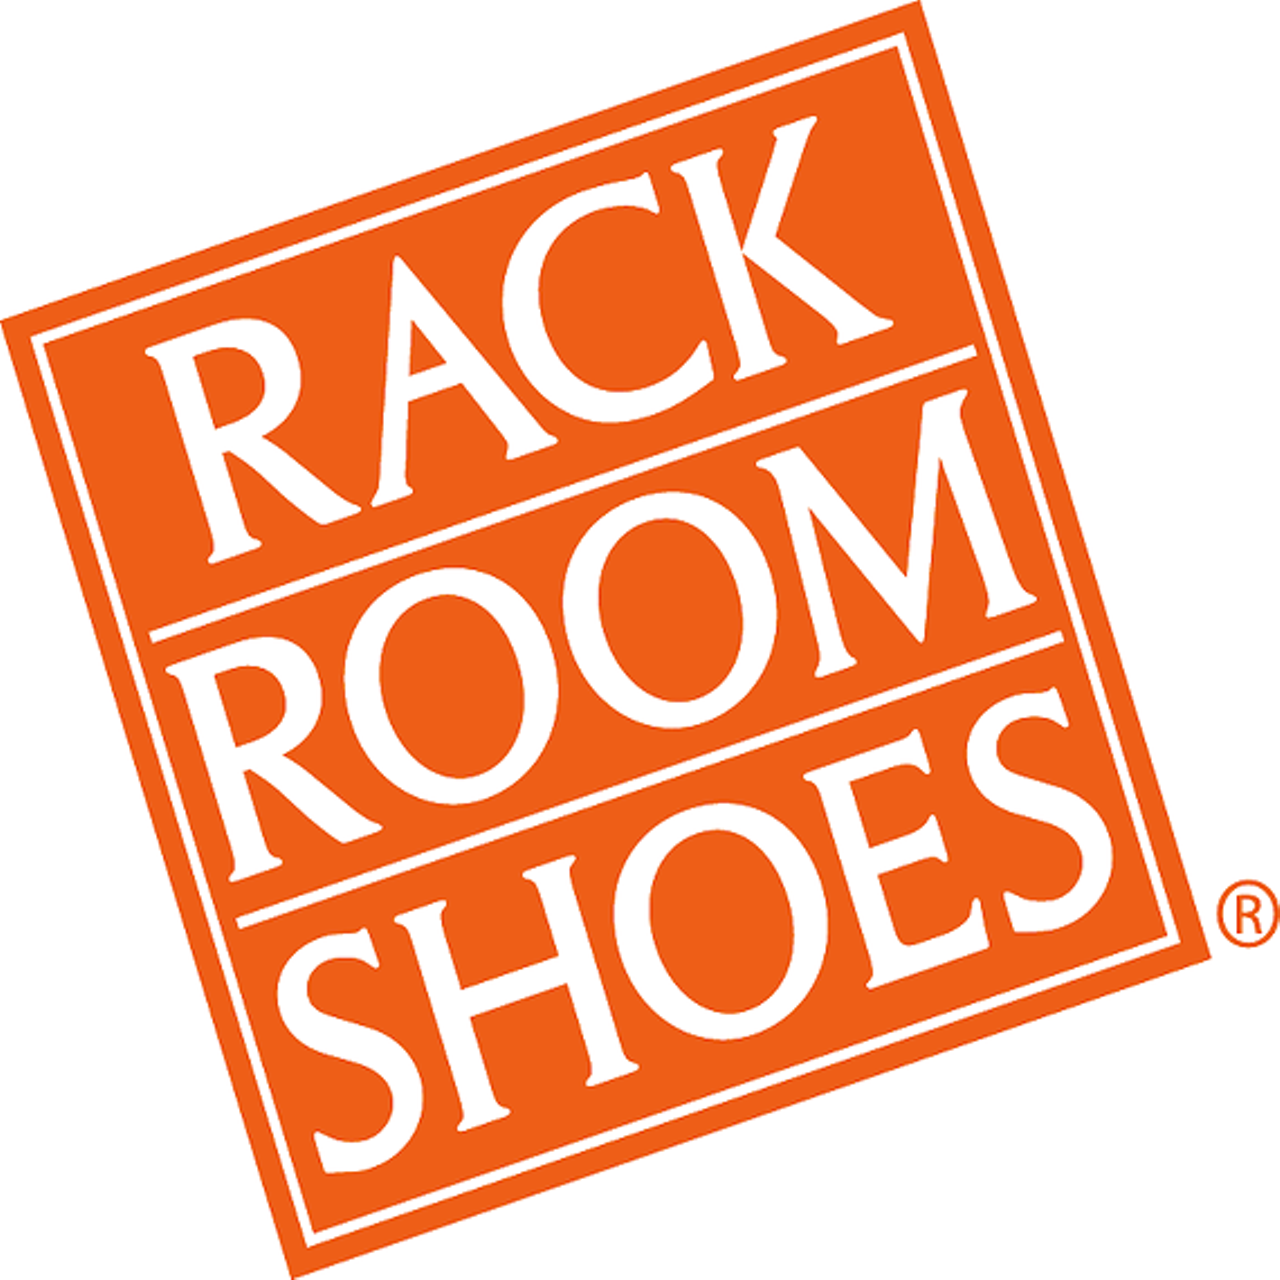 Rack Room Shoes opening in Ruston Marketplace